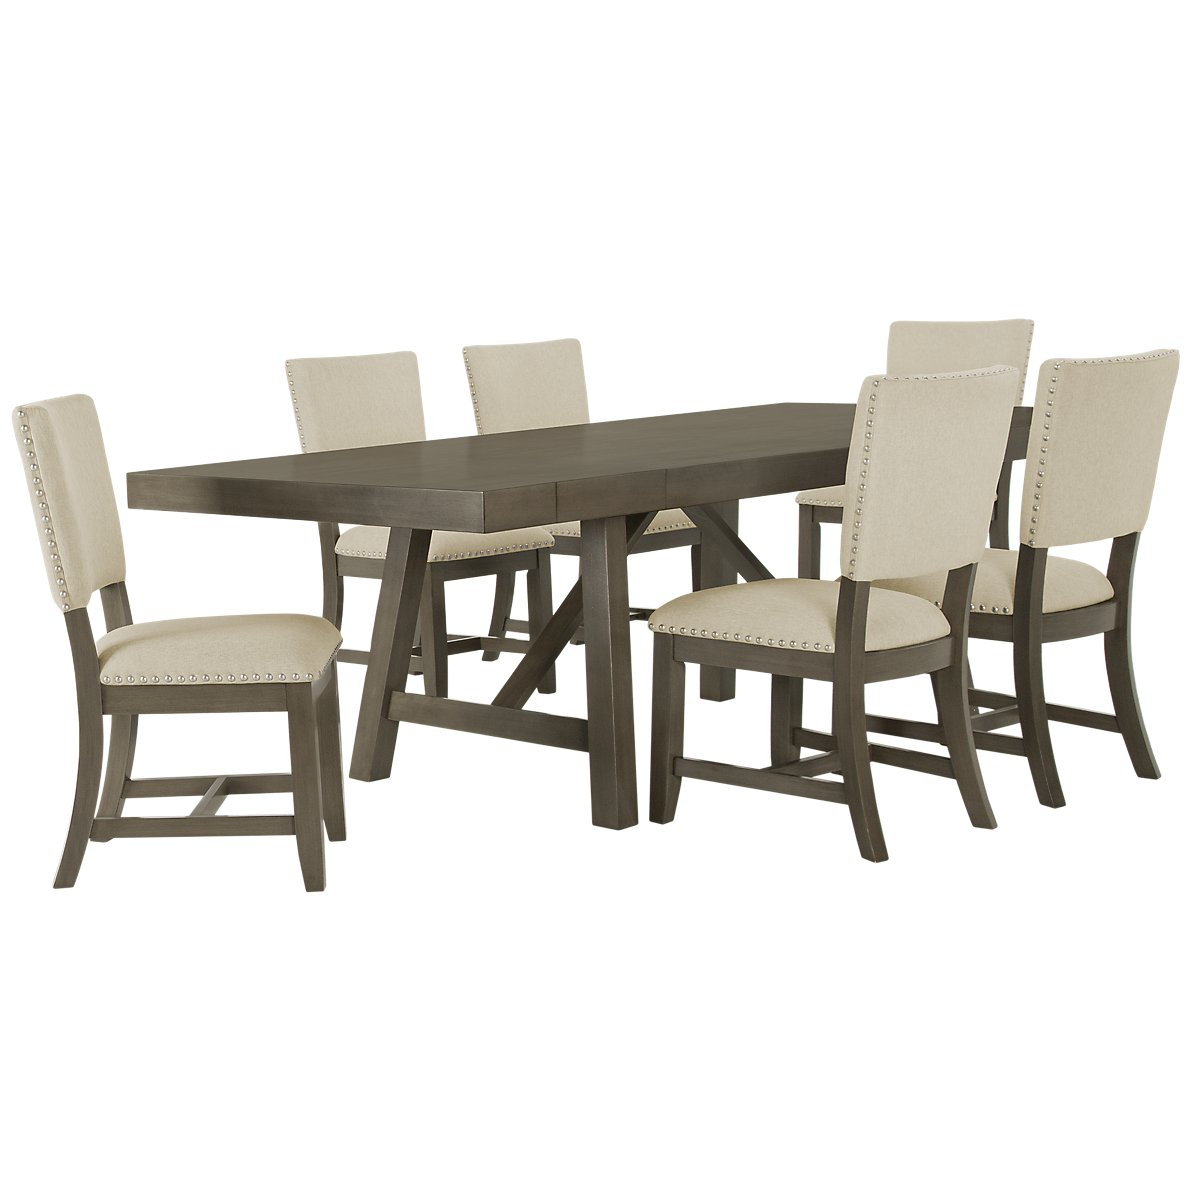 City Furniture Dining Room: City Furniture: Omaha Gray Rectangular Dining Room